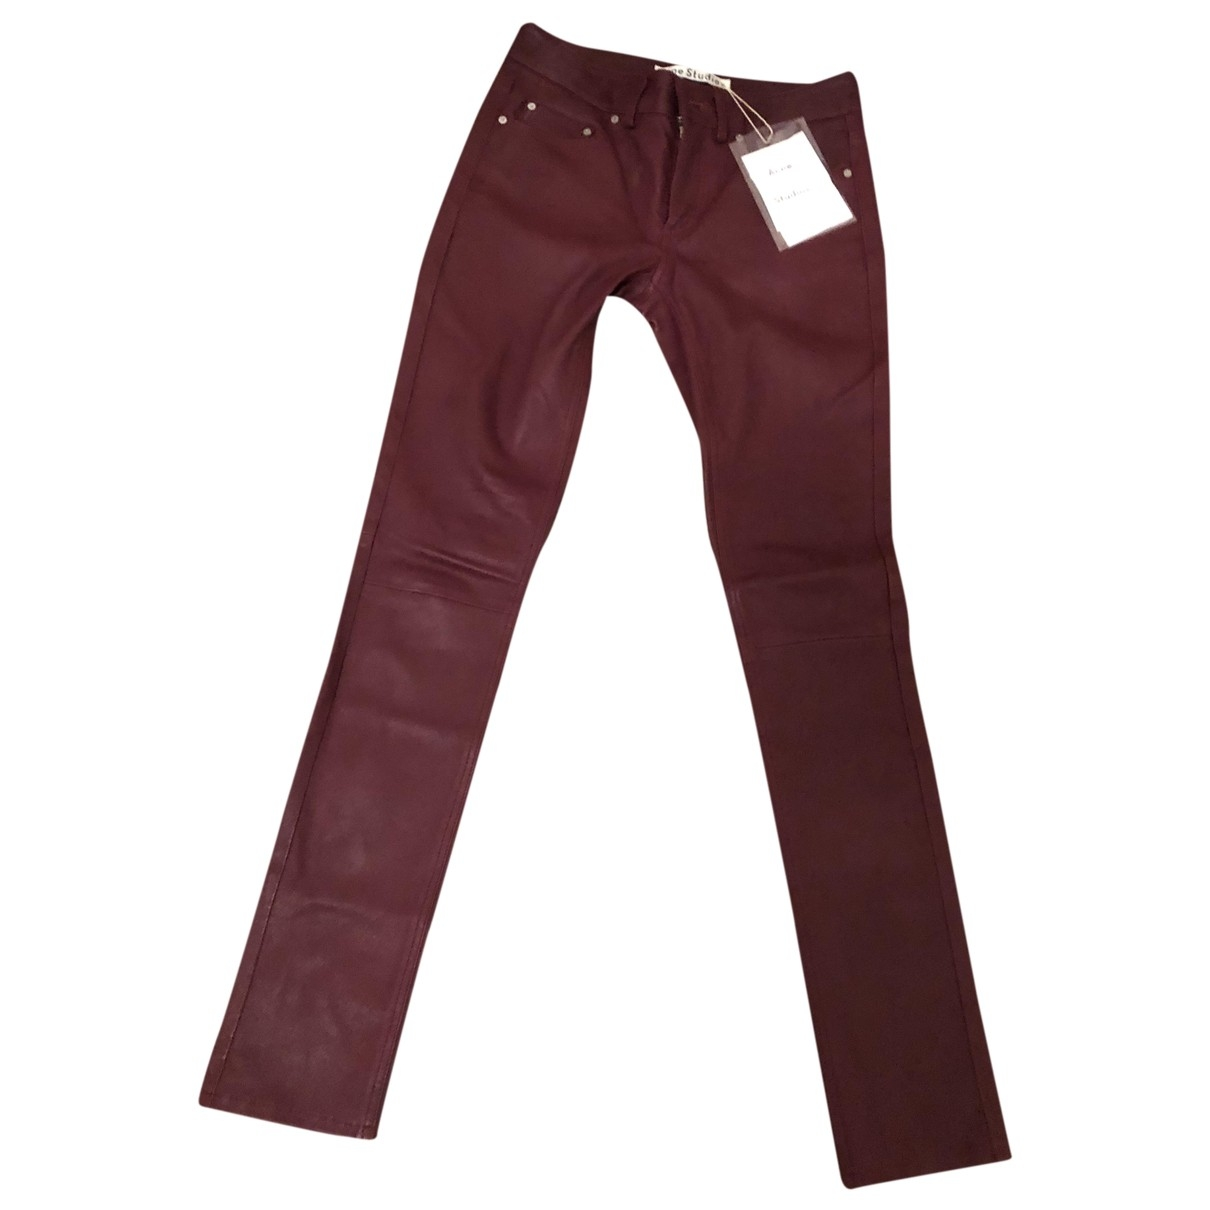 Acne Studios \N Burgundy Leather Trousers for Women XS International